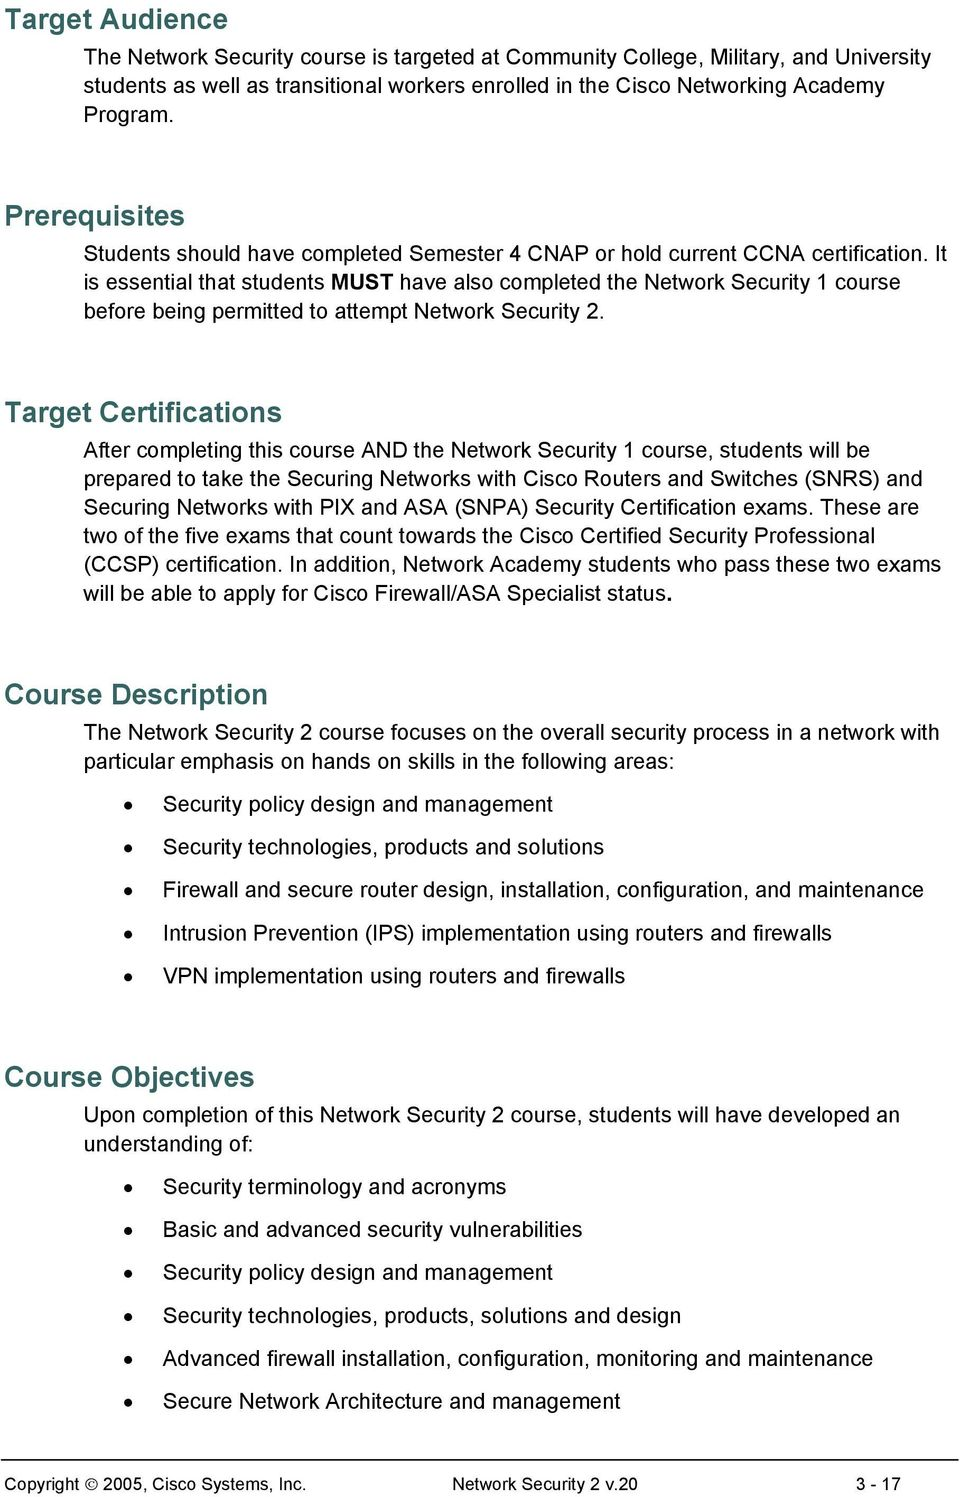 It is essential that students MUST have also completed the Network Security 1 course before being permitted to attempt Network Security 2.